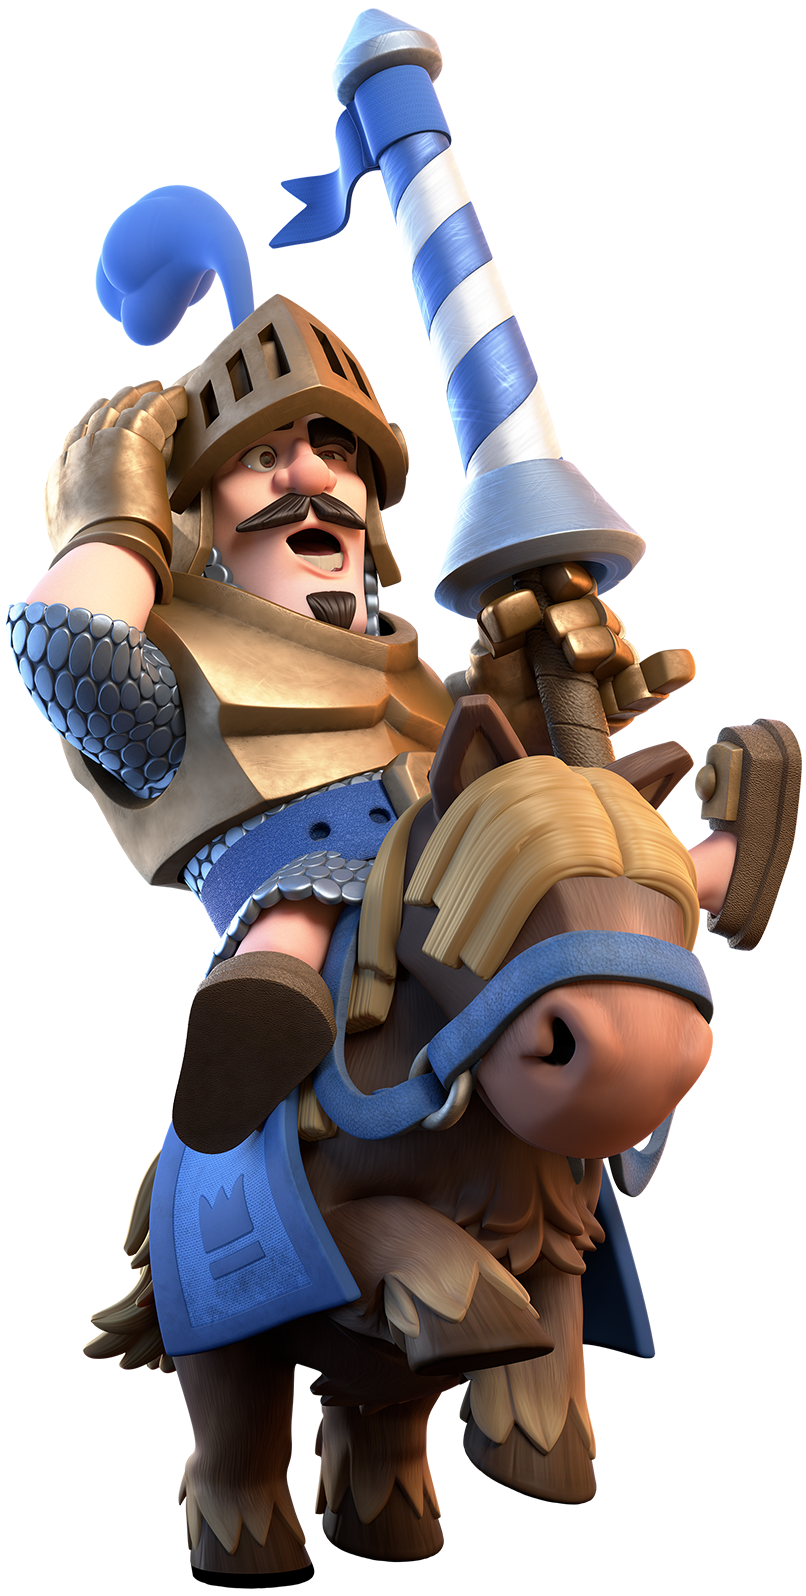 Clash Royale New Coc With Dota Gameplay Festa Clash Royale Clash Royale Personagens Clash